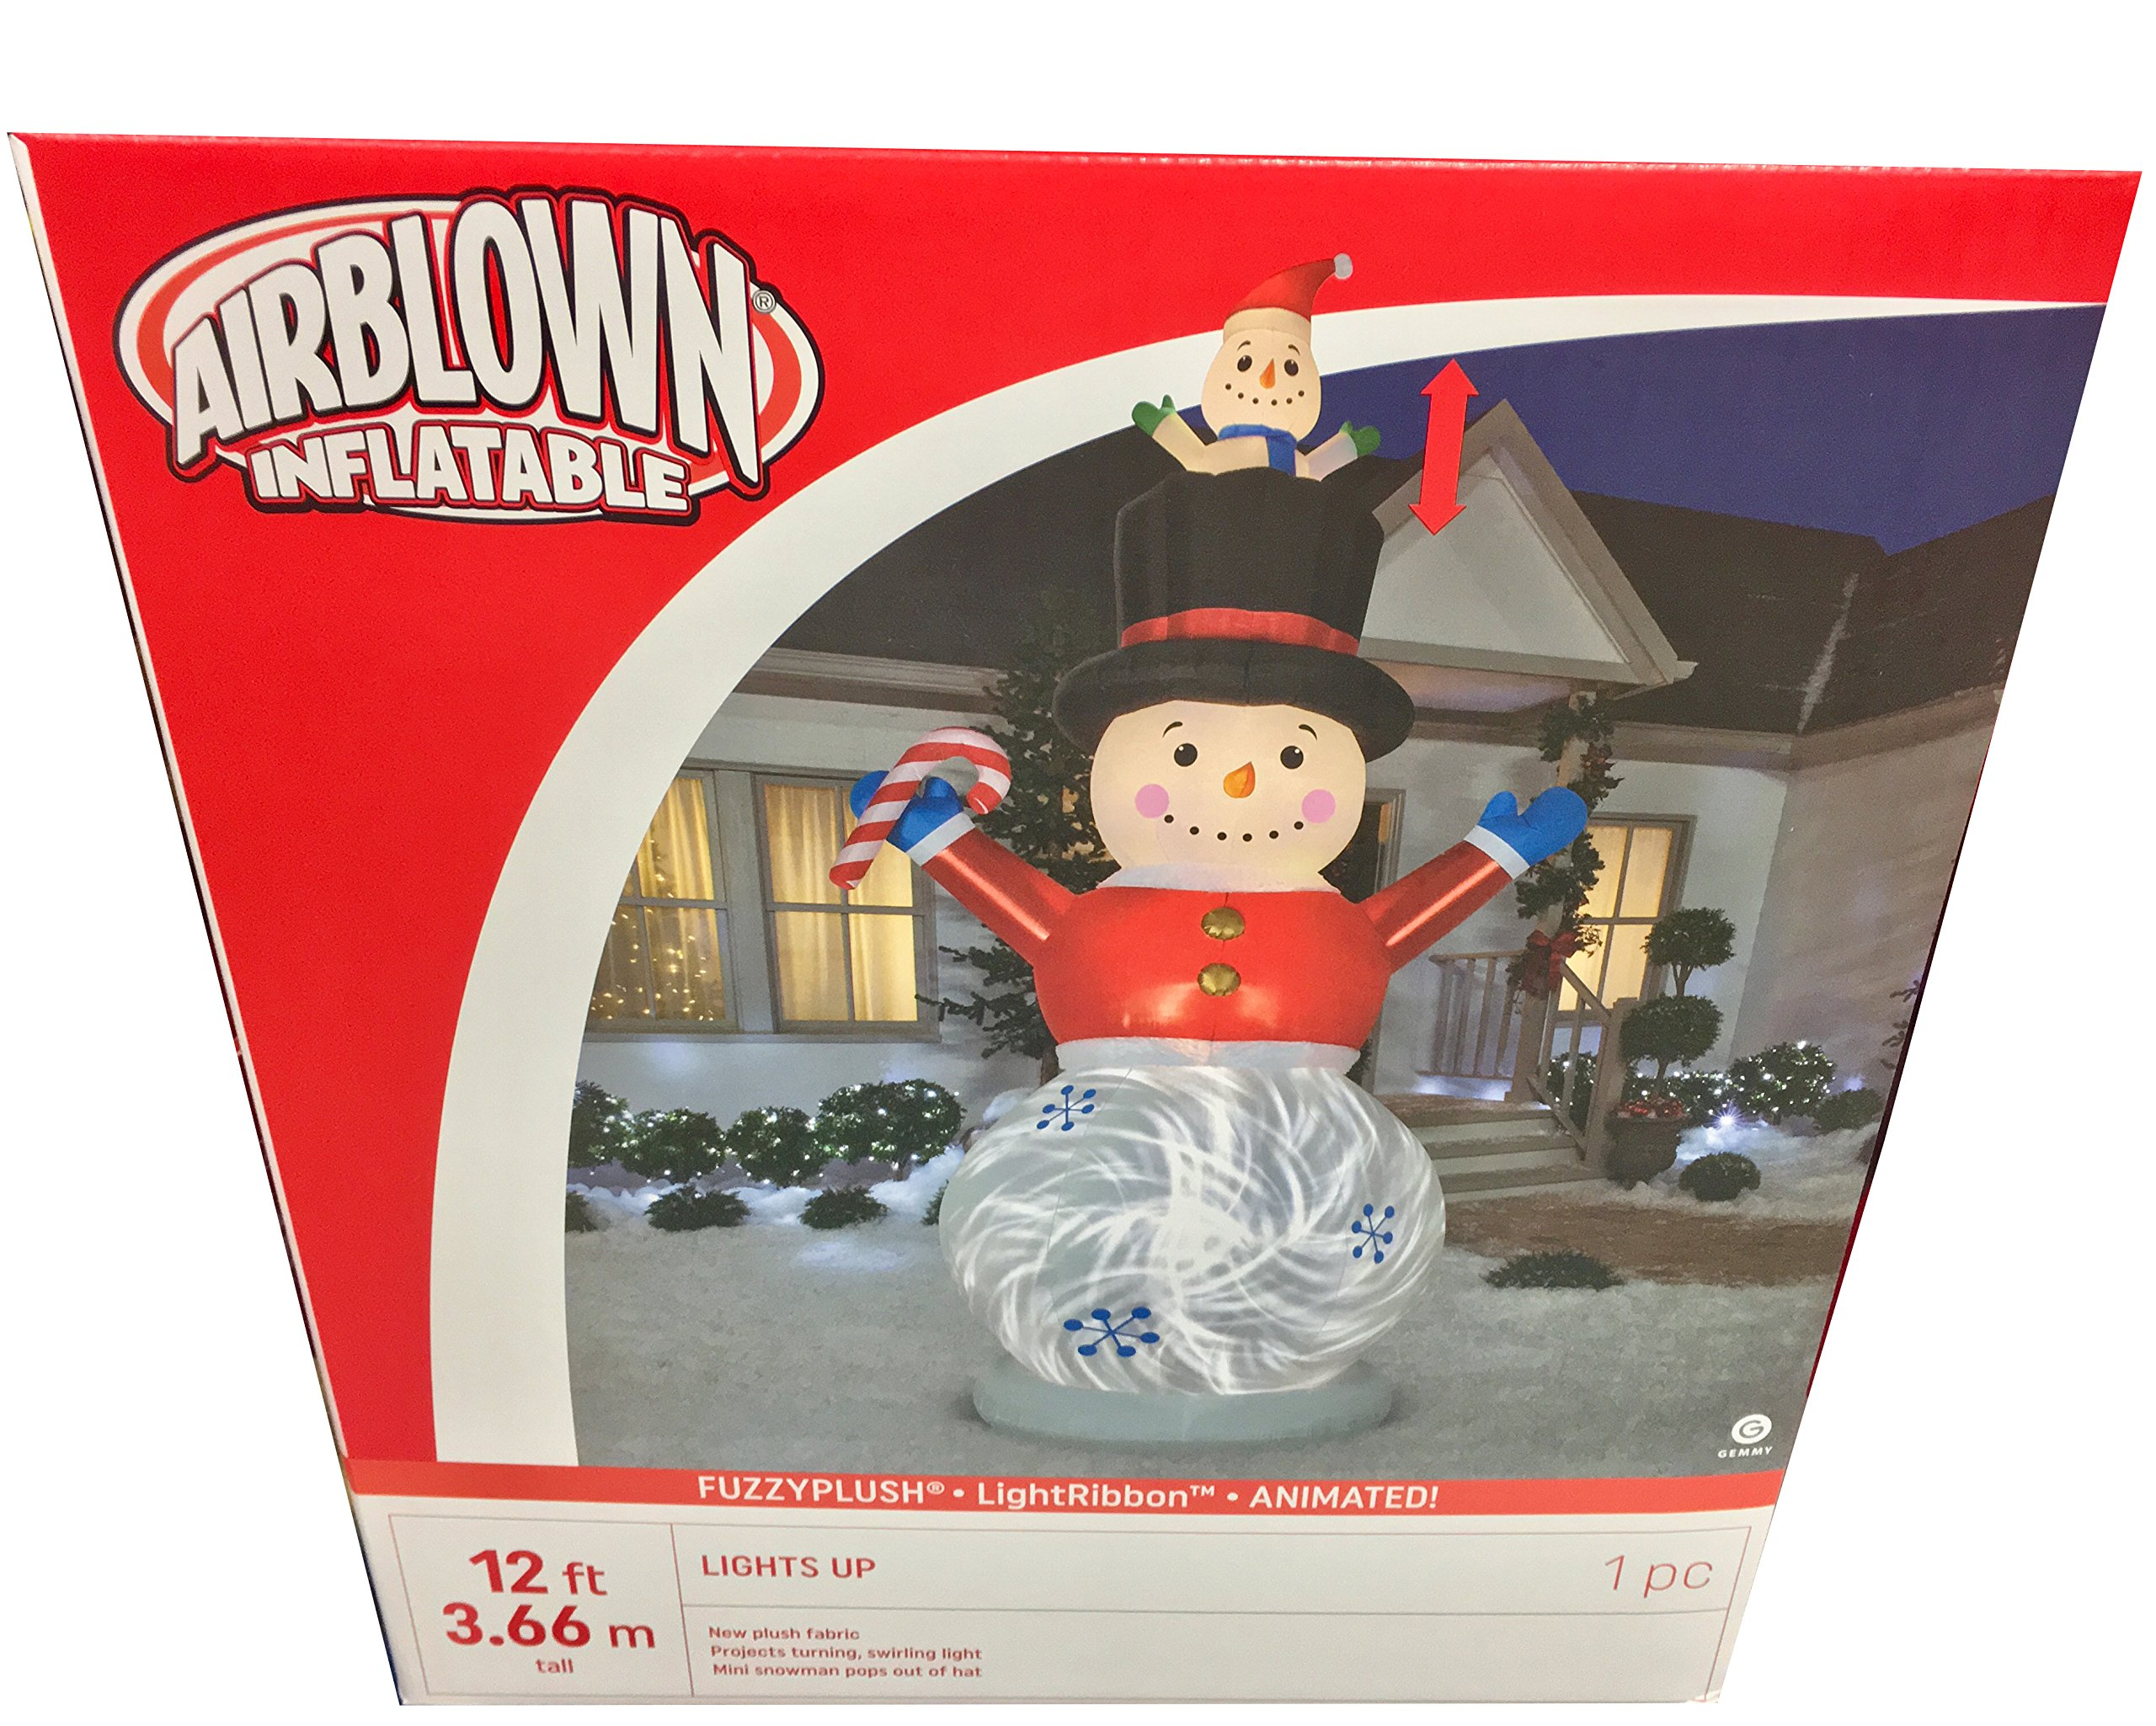 Gemmy Snowman with Animated Baby Snowman Indoor/Outdoor Holiday Decoration